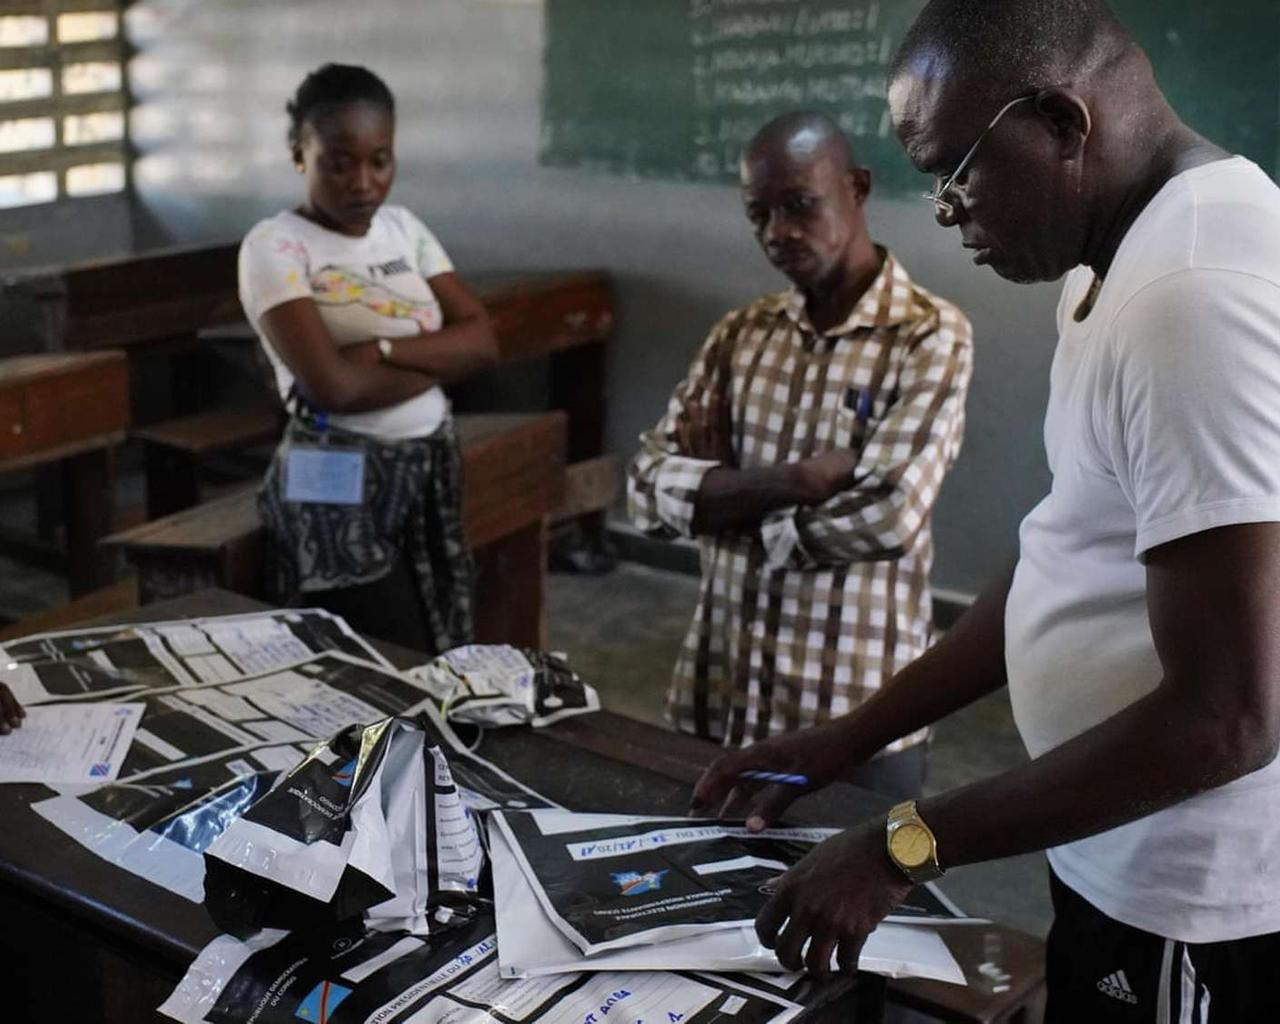 Closed for Elections: Congo Turns Off Internet During Presidential Election